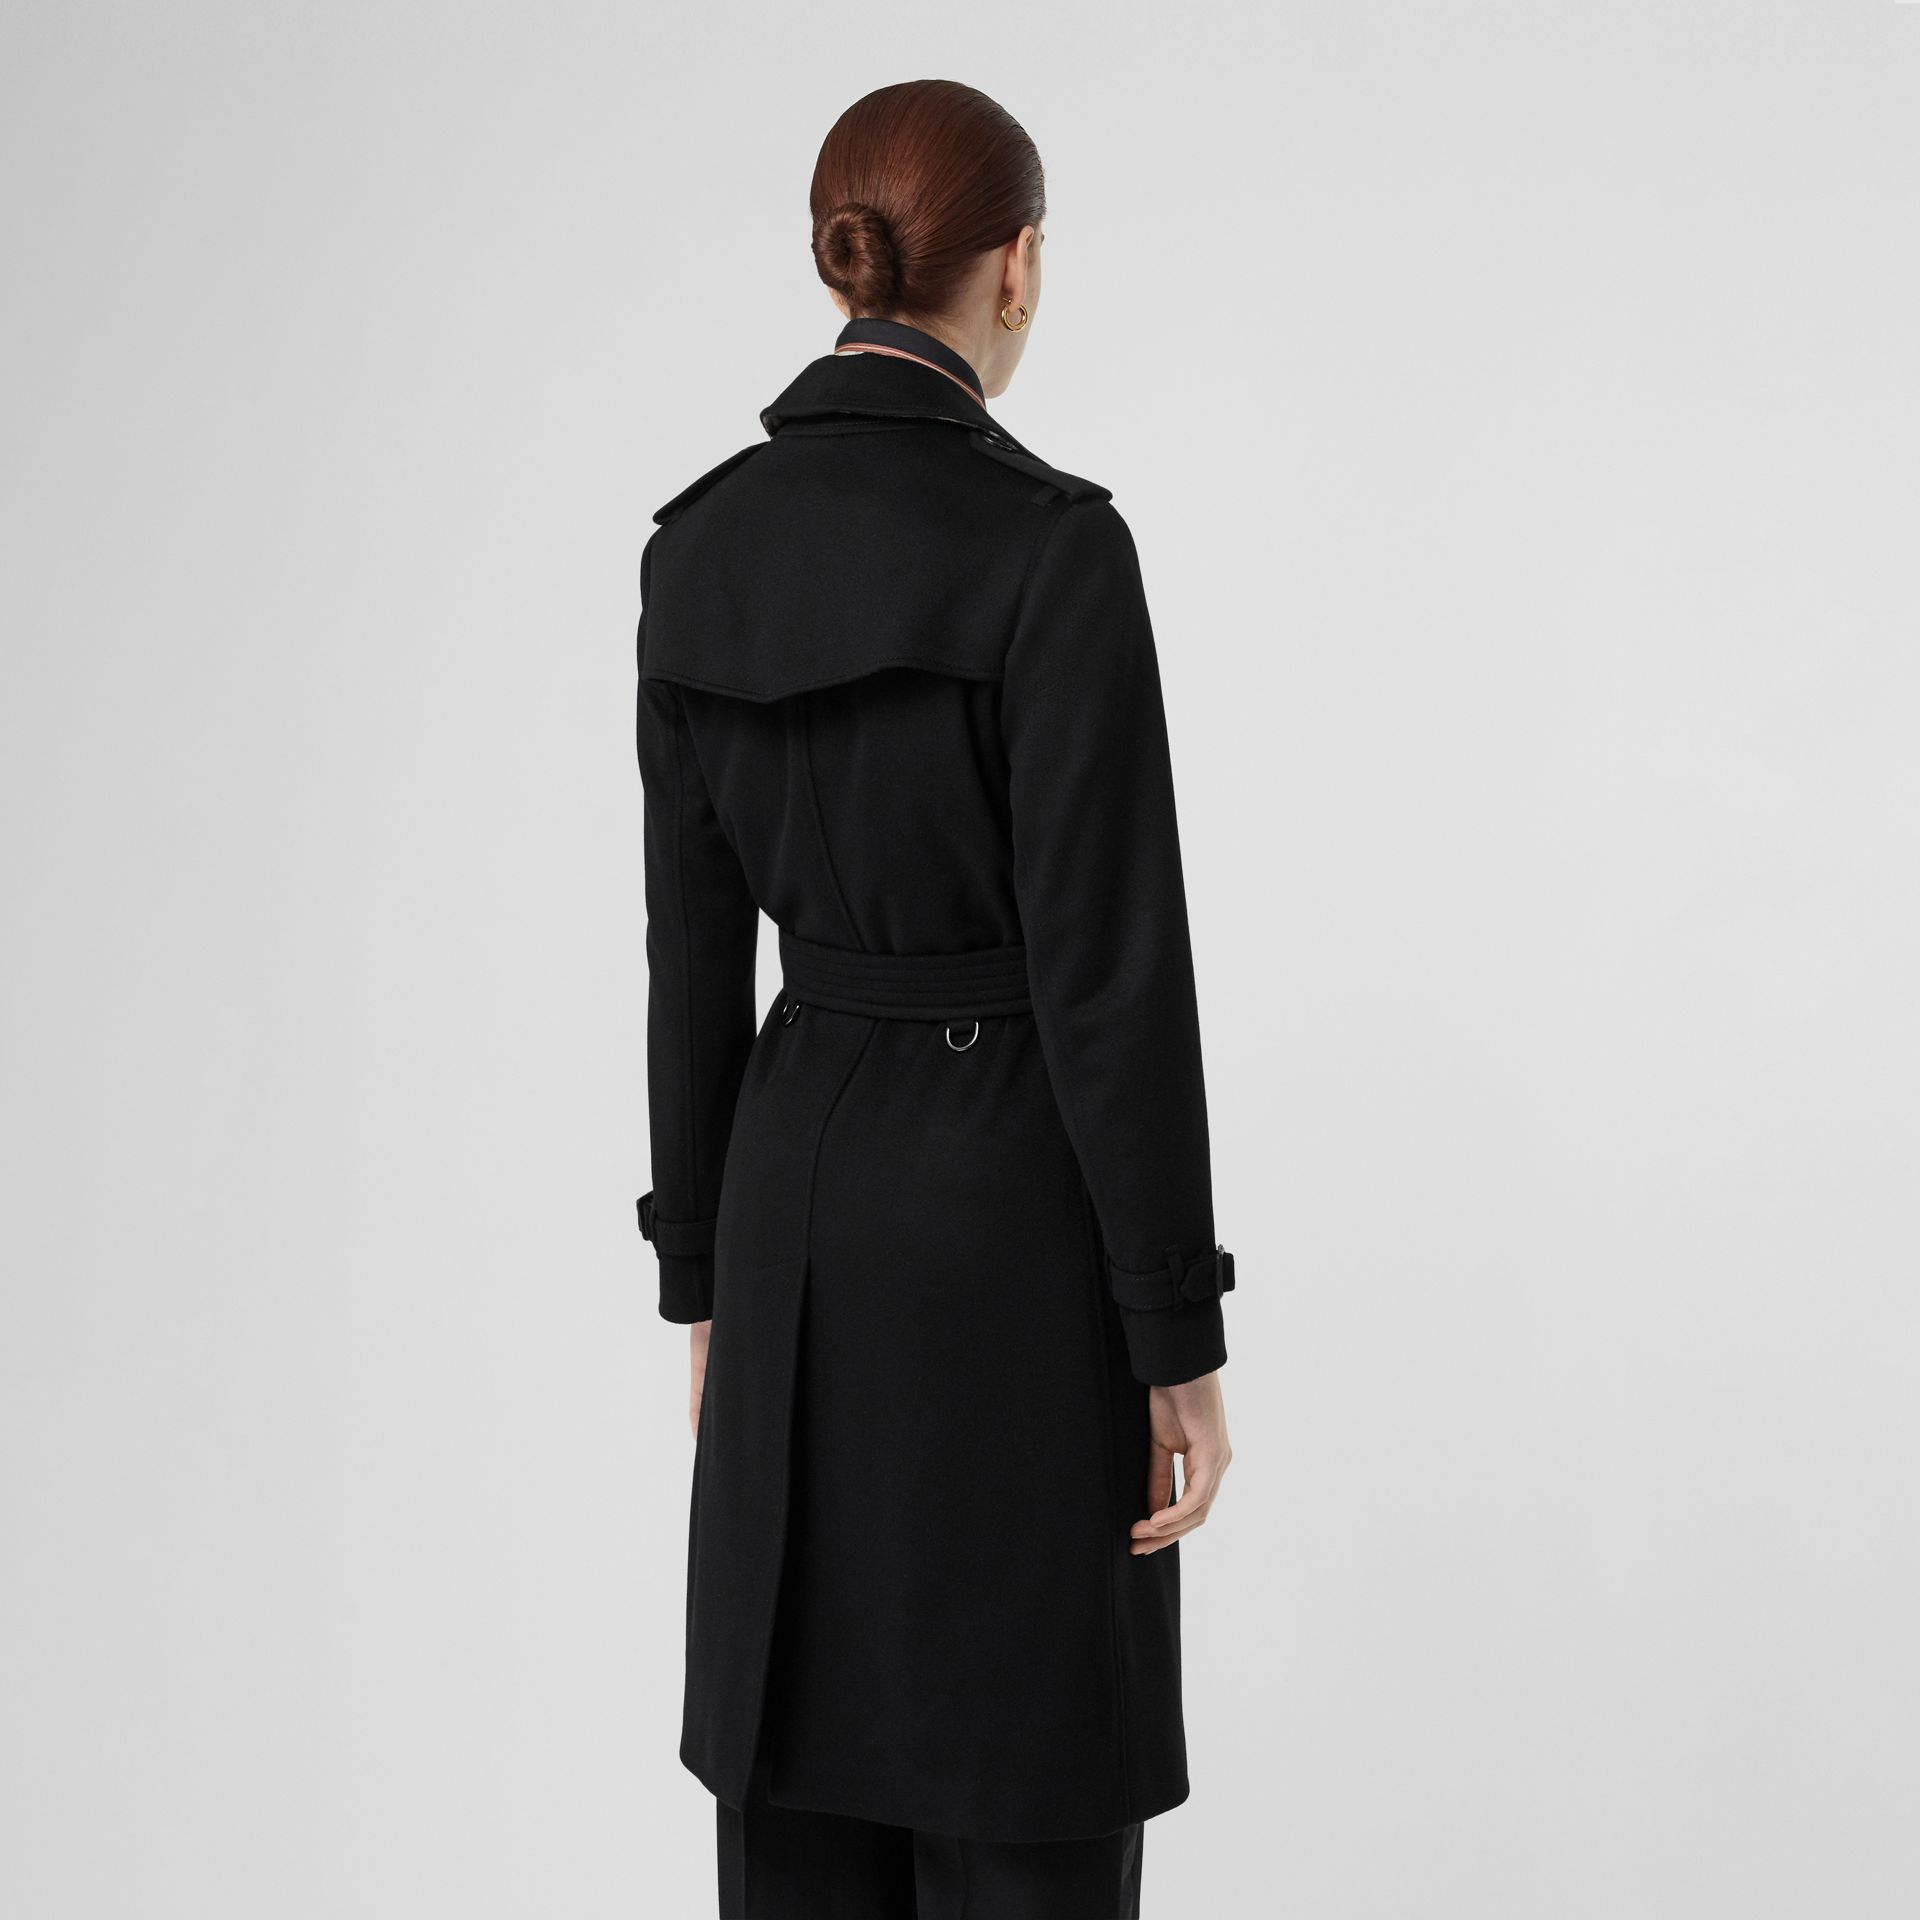 Cashmere Trench Coat in Black - Women | Burberry United States - gallery image 2